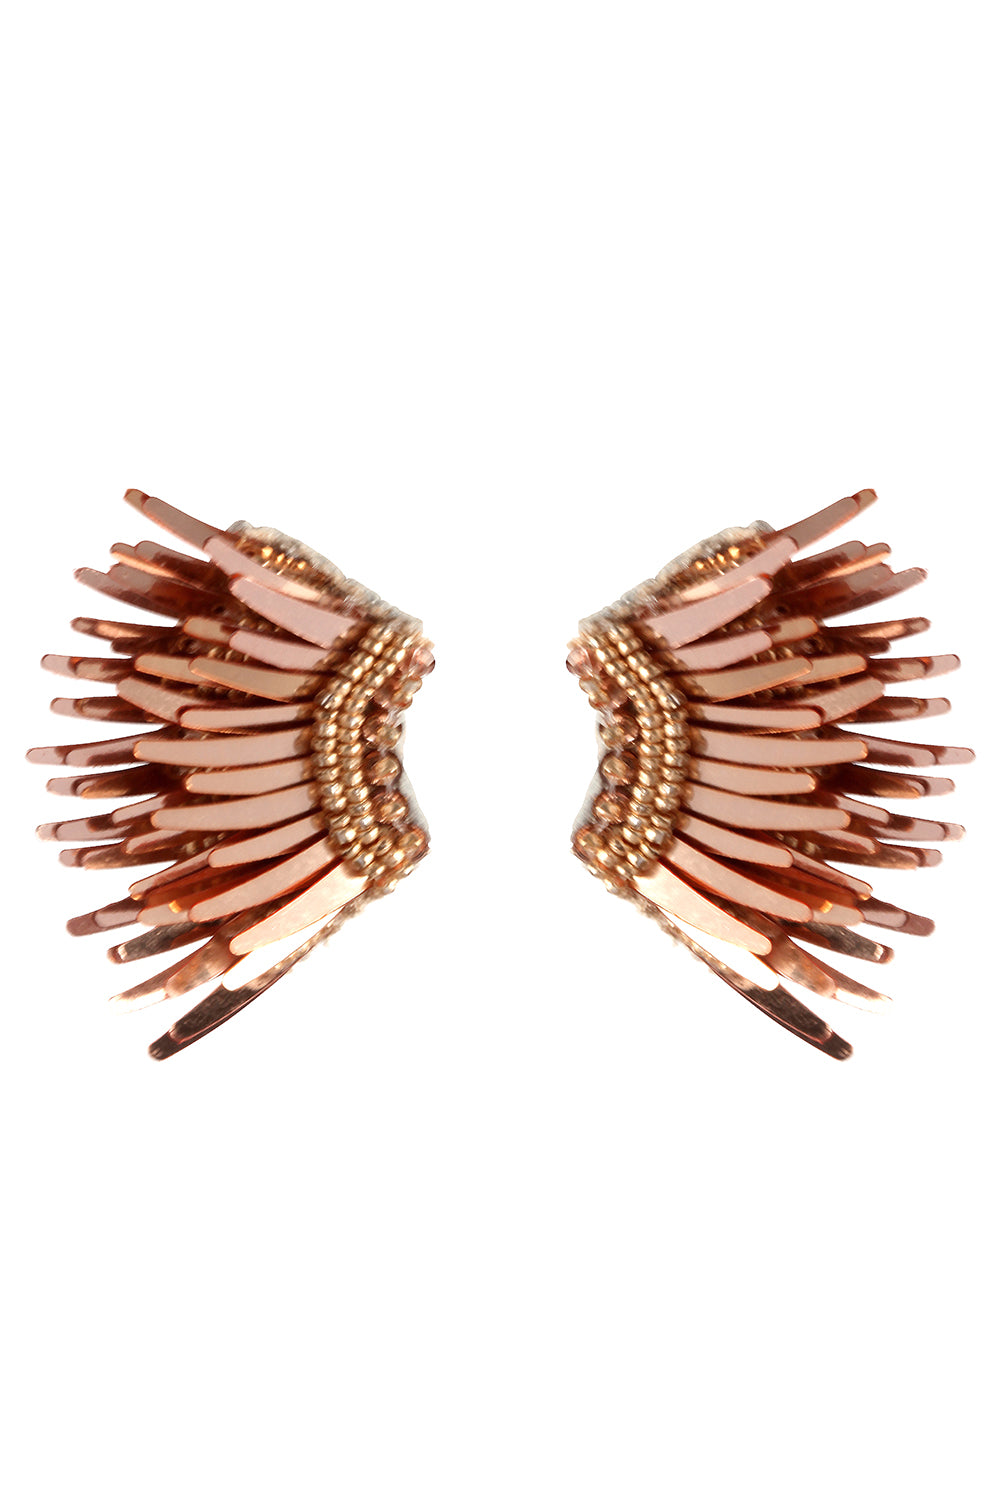 Mini Madeline Earrings in Rose Gold